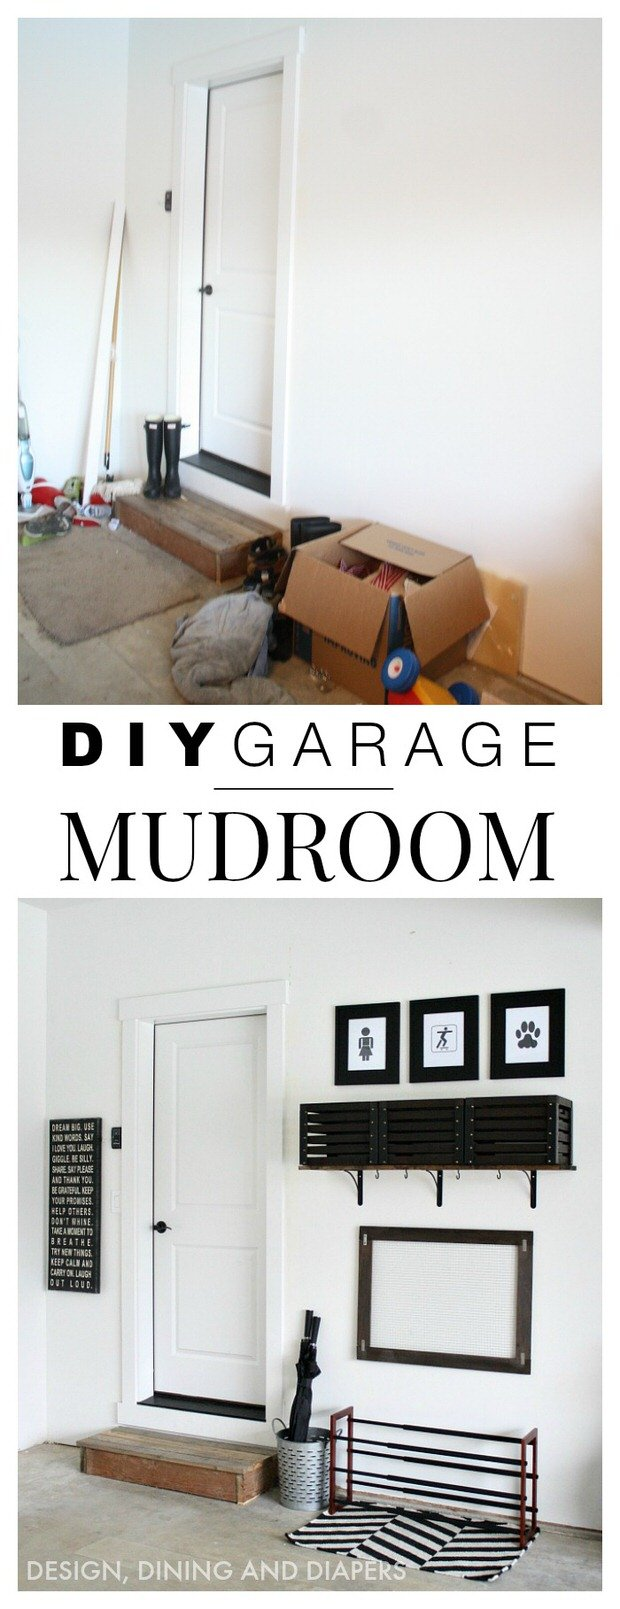 DIY-Garage-Mudroom-